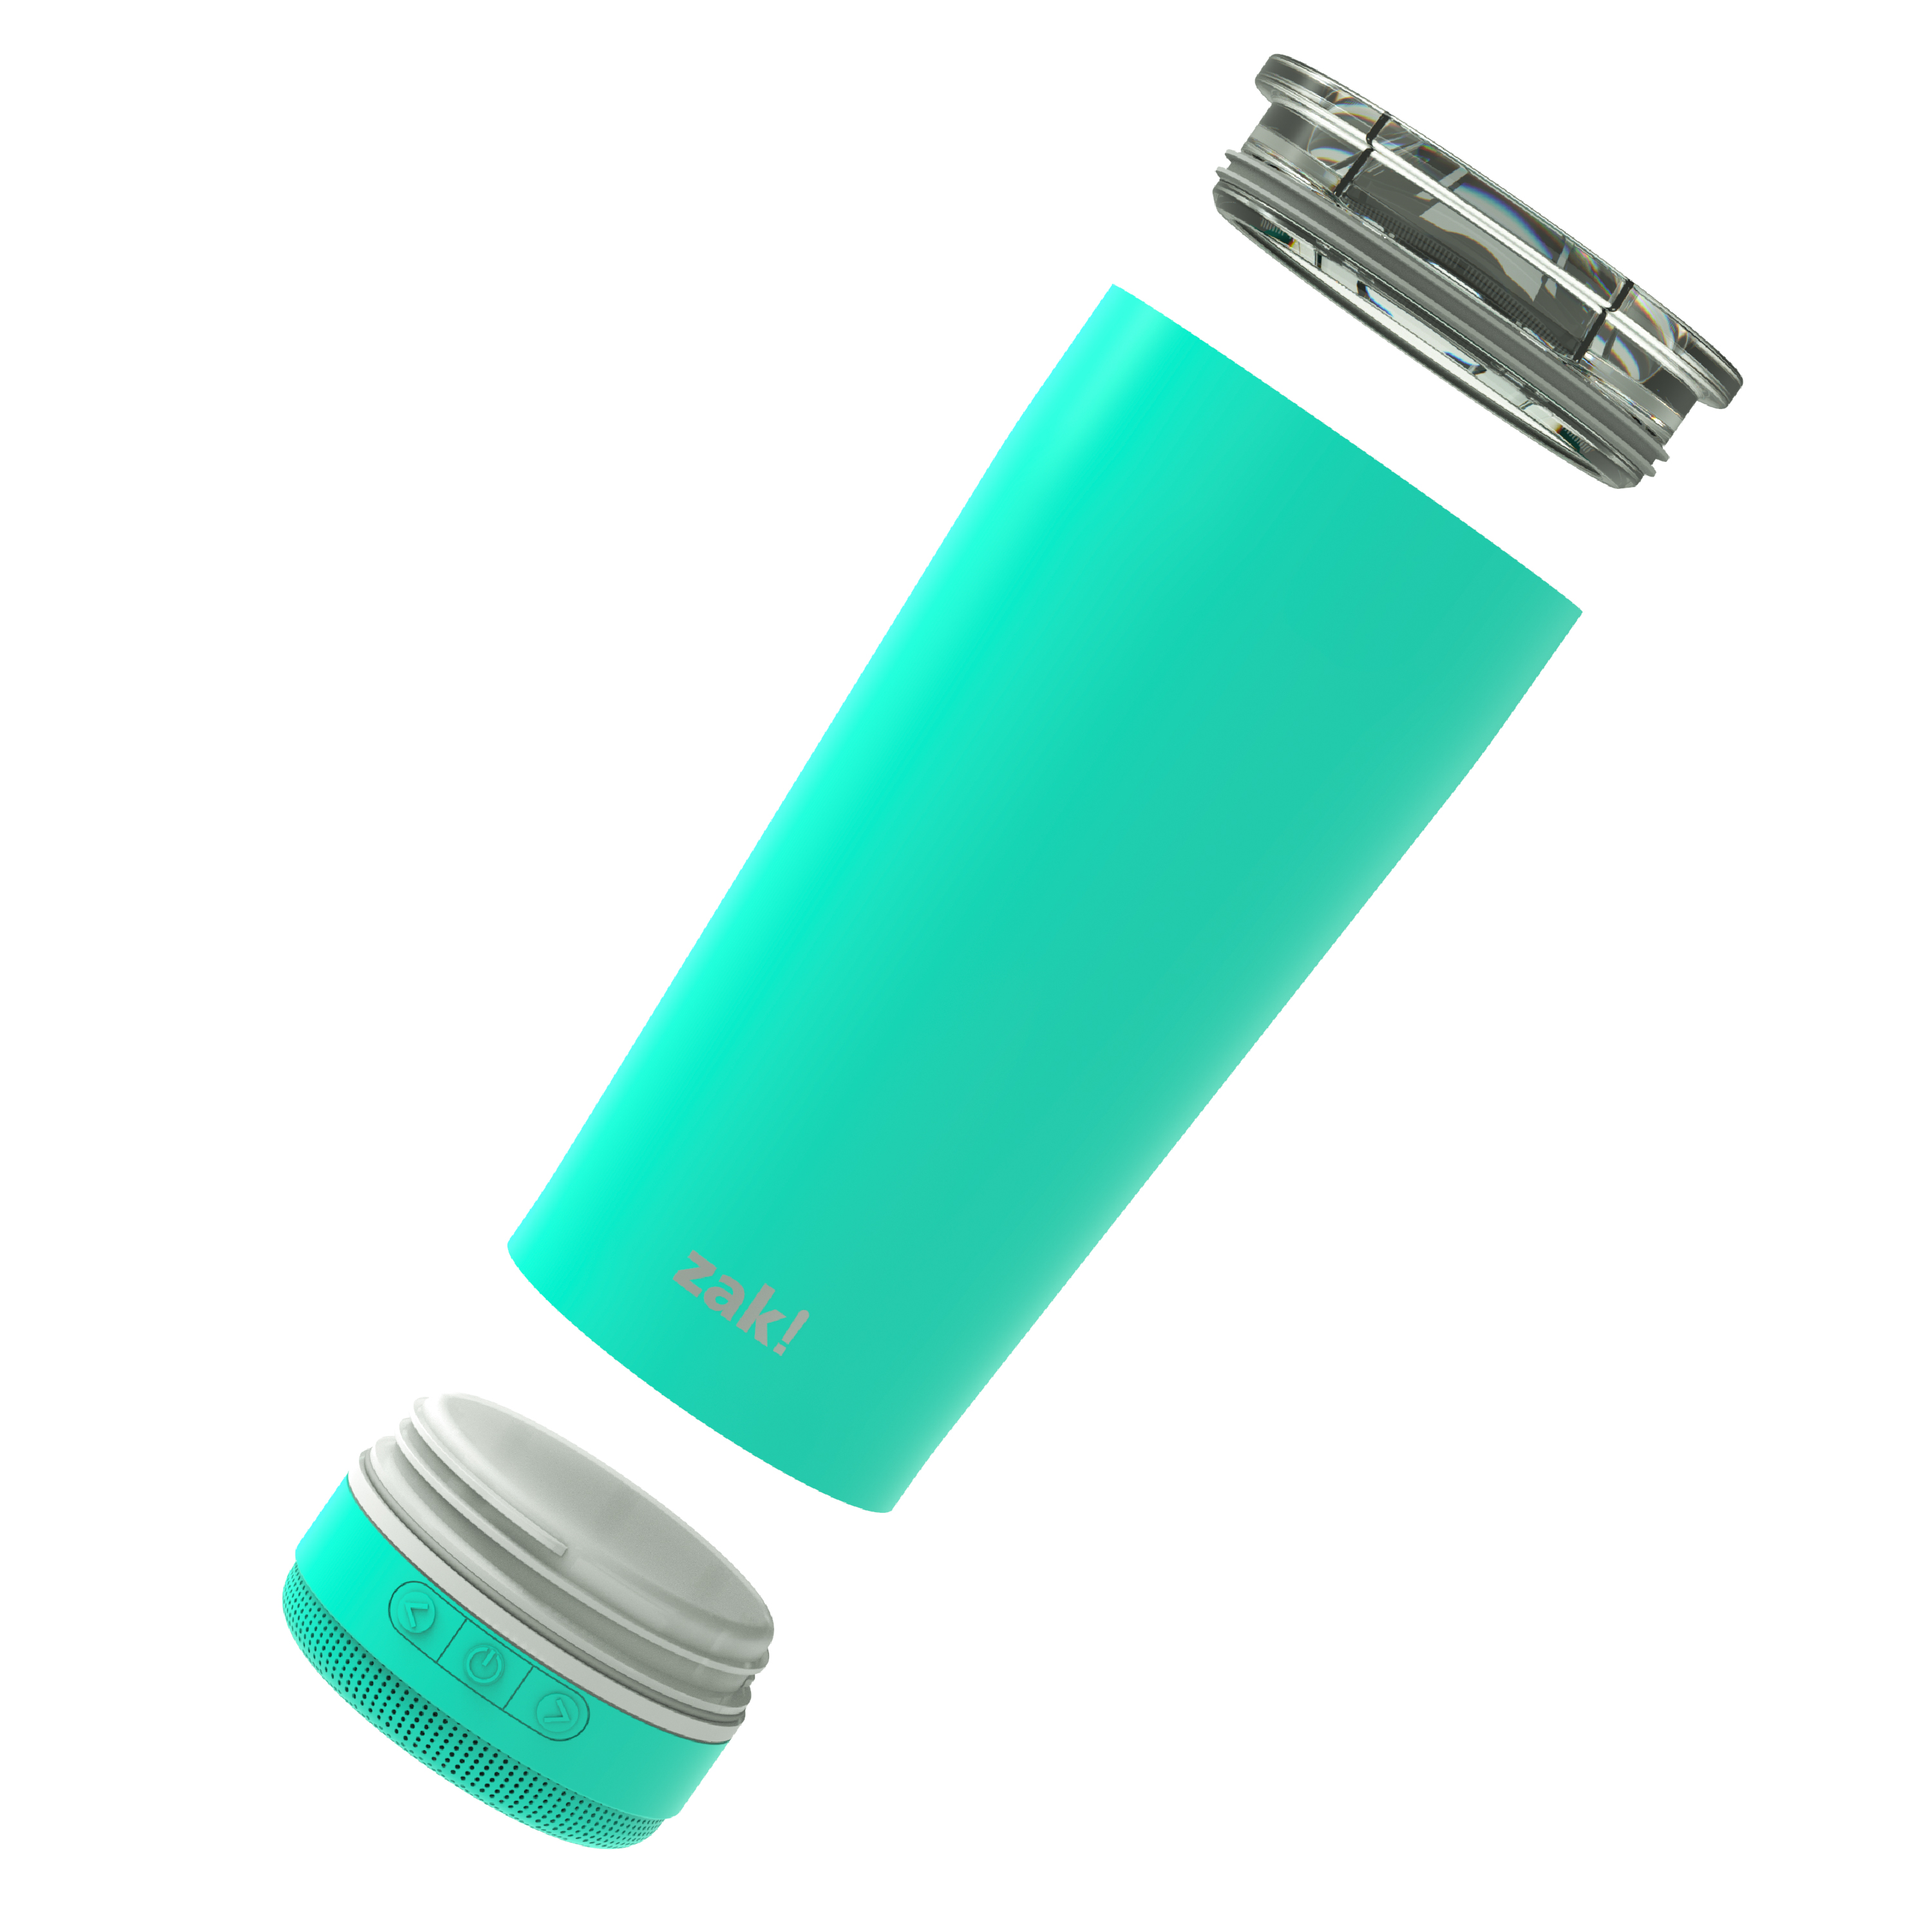 Zak Play 18 ounce Stainless Steel Tumbler with Bluetooth Speaker, Teal slideshow image 2